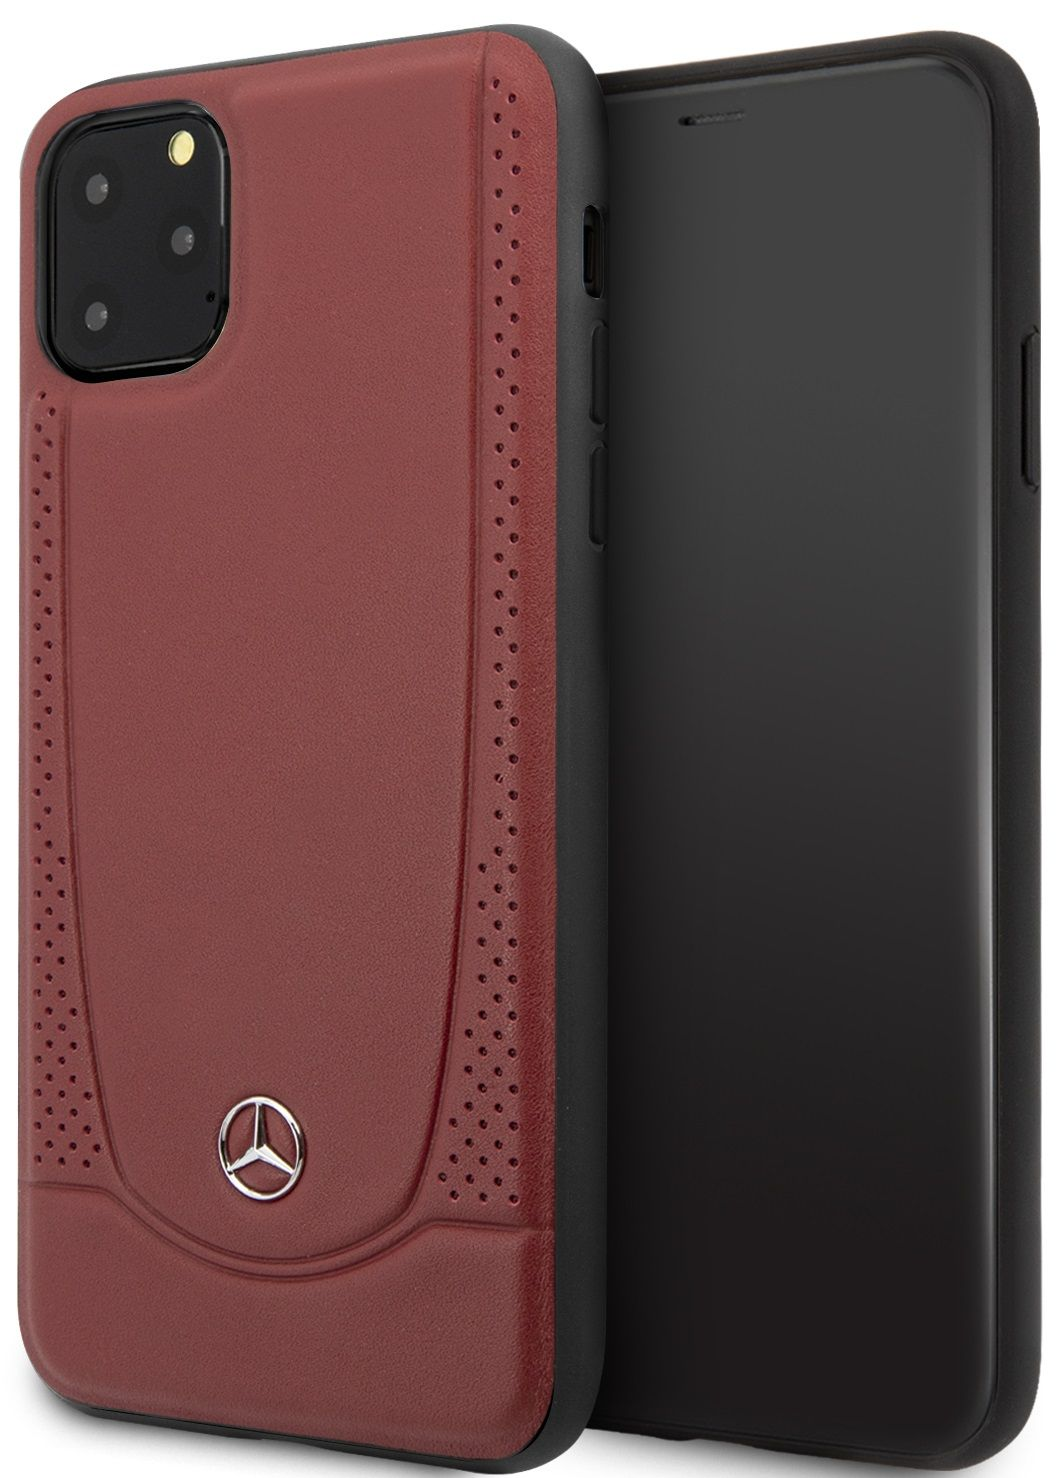 Чехол Mercedes для iPhone 11 Pro Max Urban Smooth/perforated Hard Leather Red